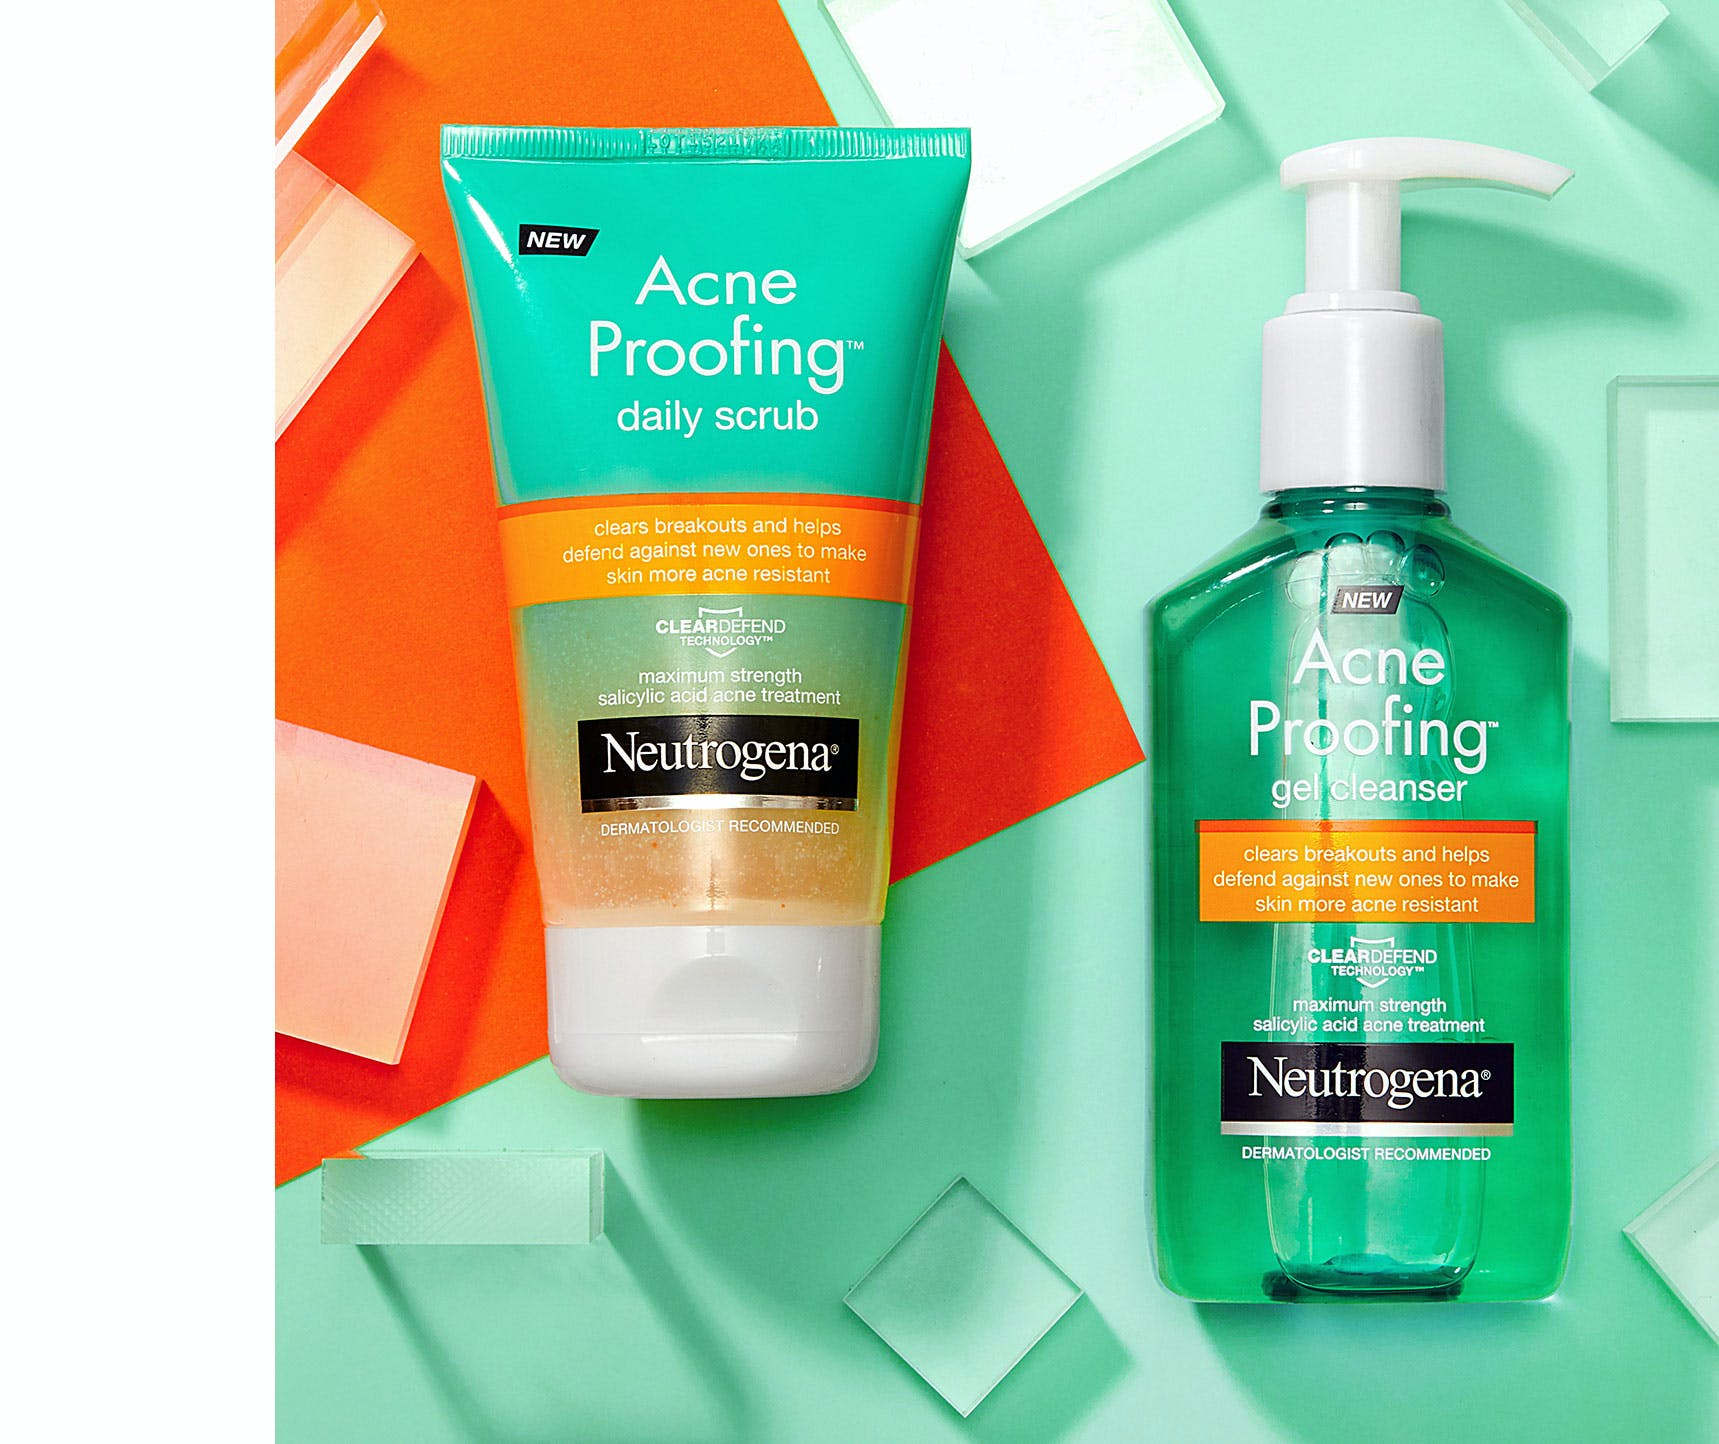 Acne Proofing Gel Cleanser